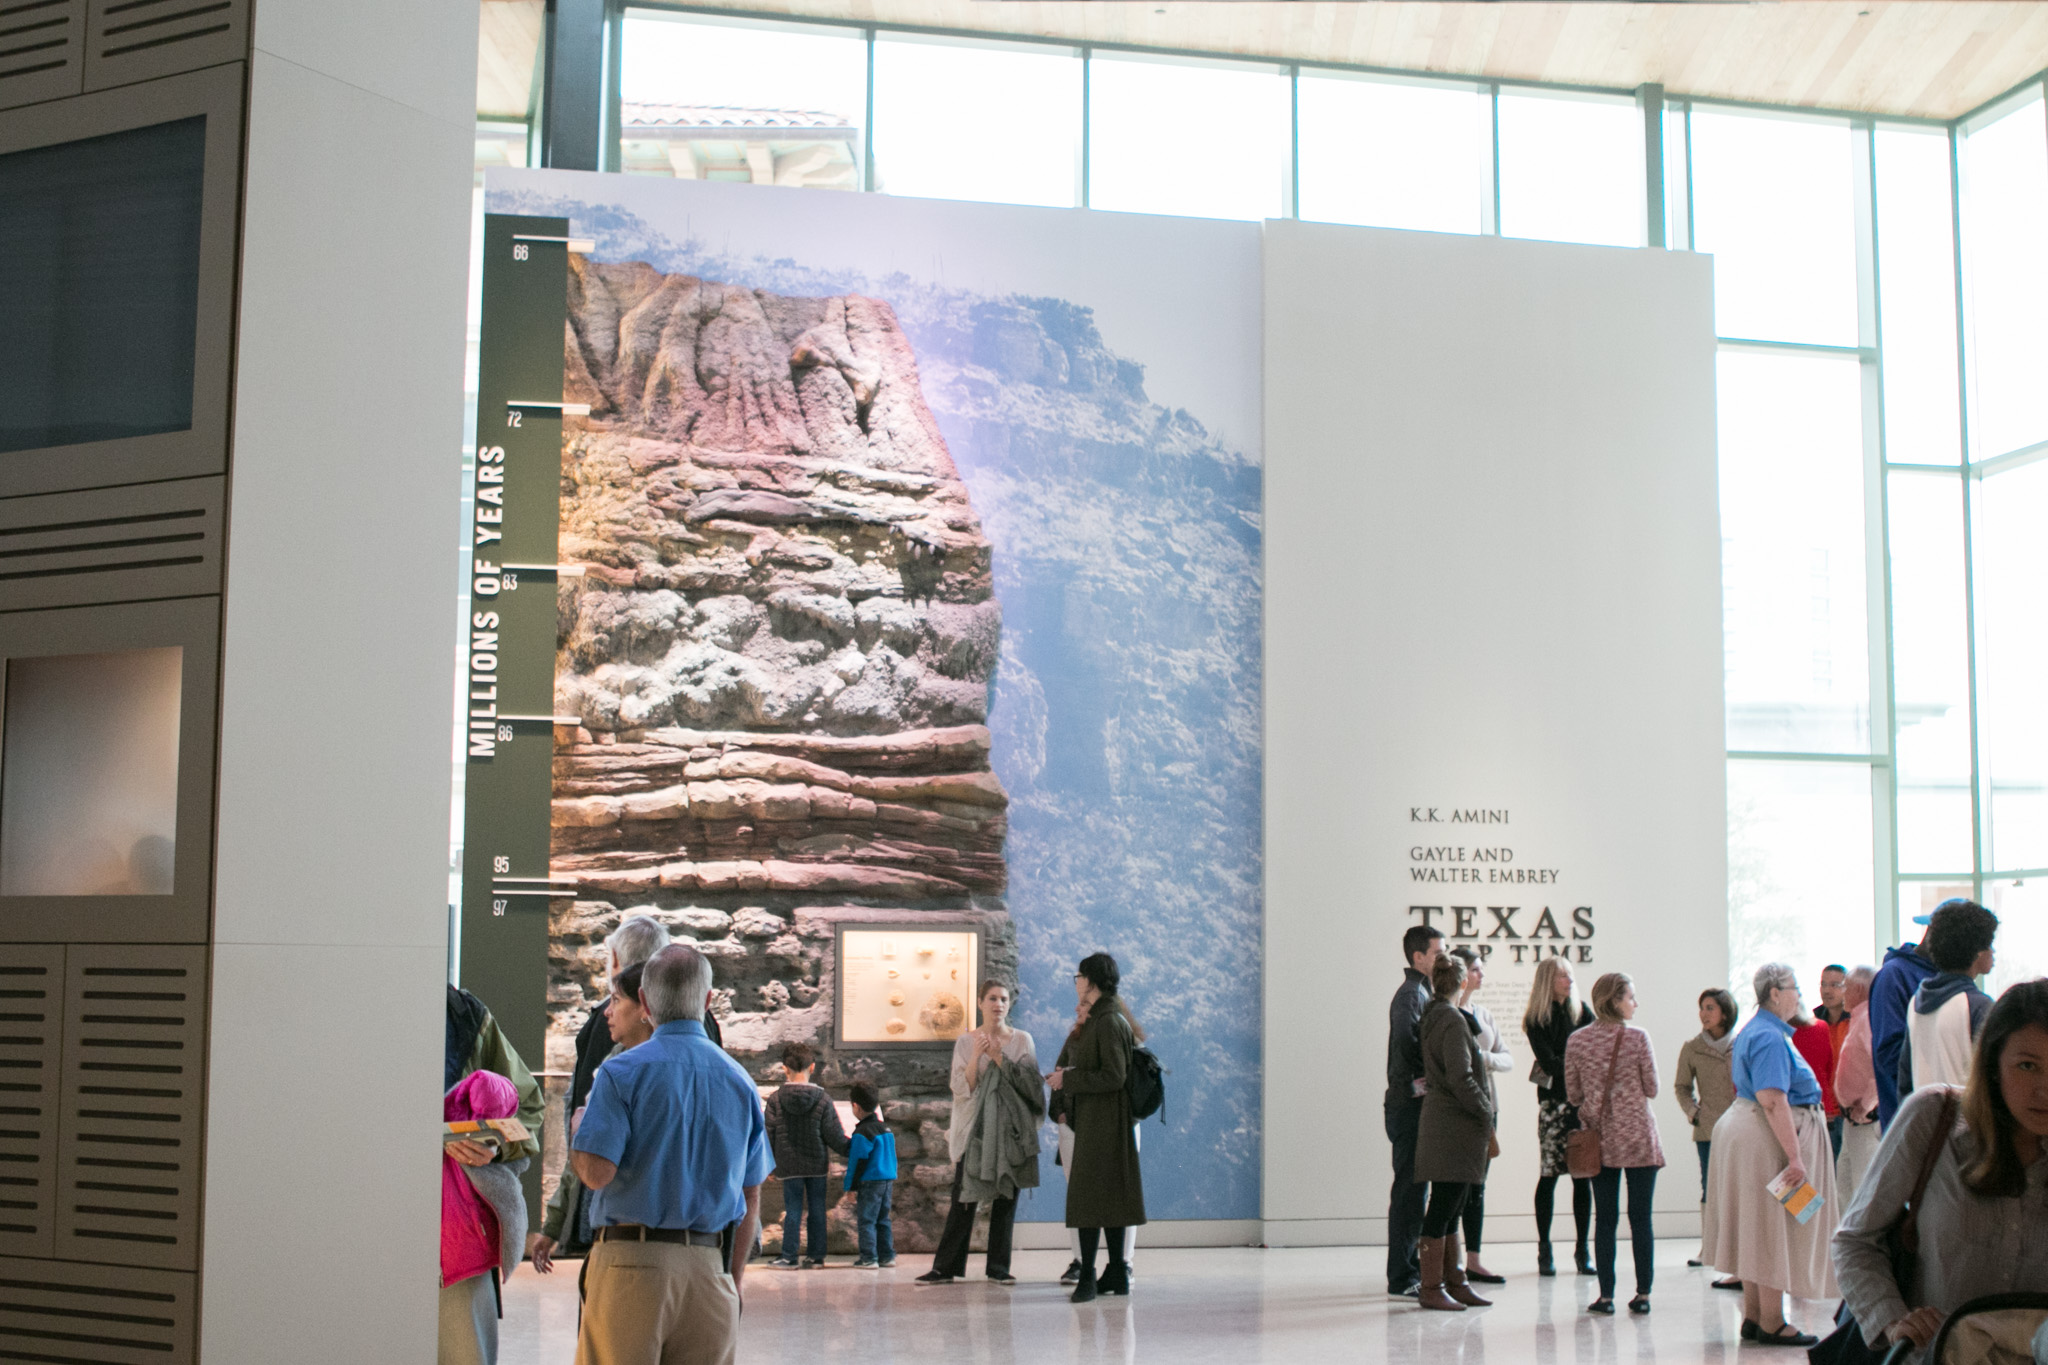 Crowds gather inside to look at exhibits at the grand debut of the New Witte on March 4.